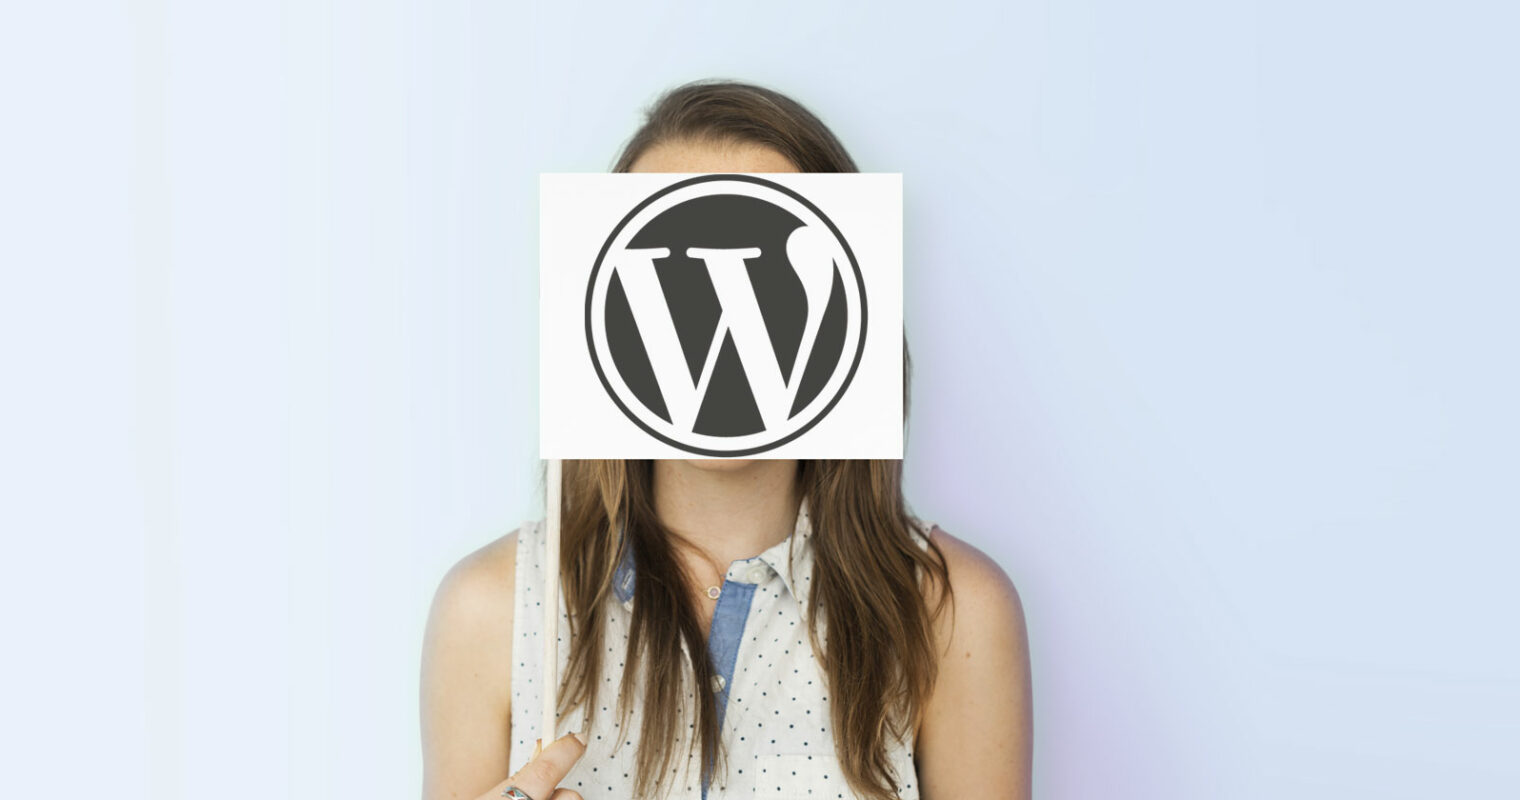 WordPress 5.6 Feature Removed For Subpar Experience